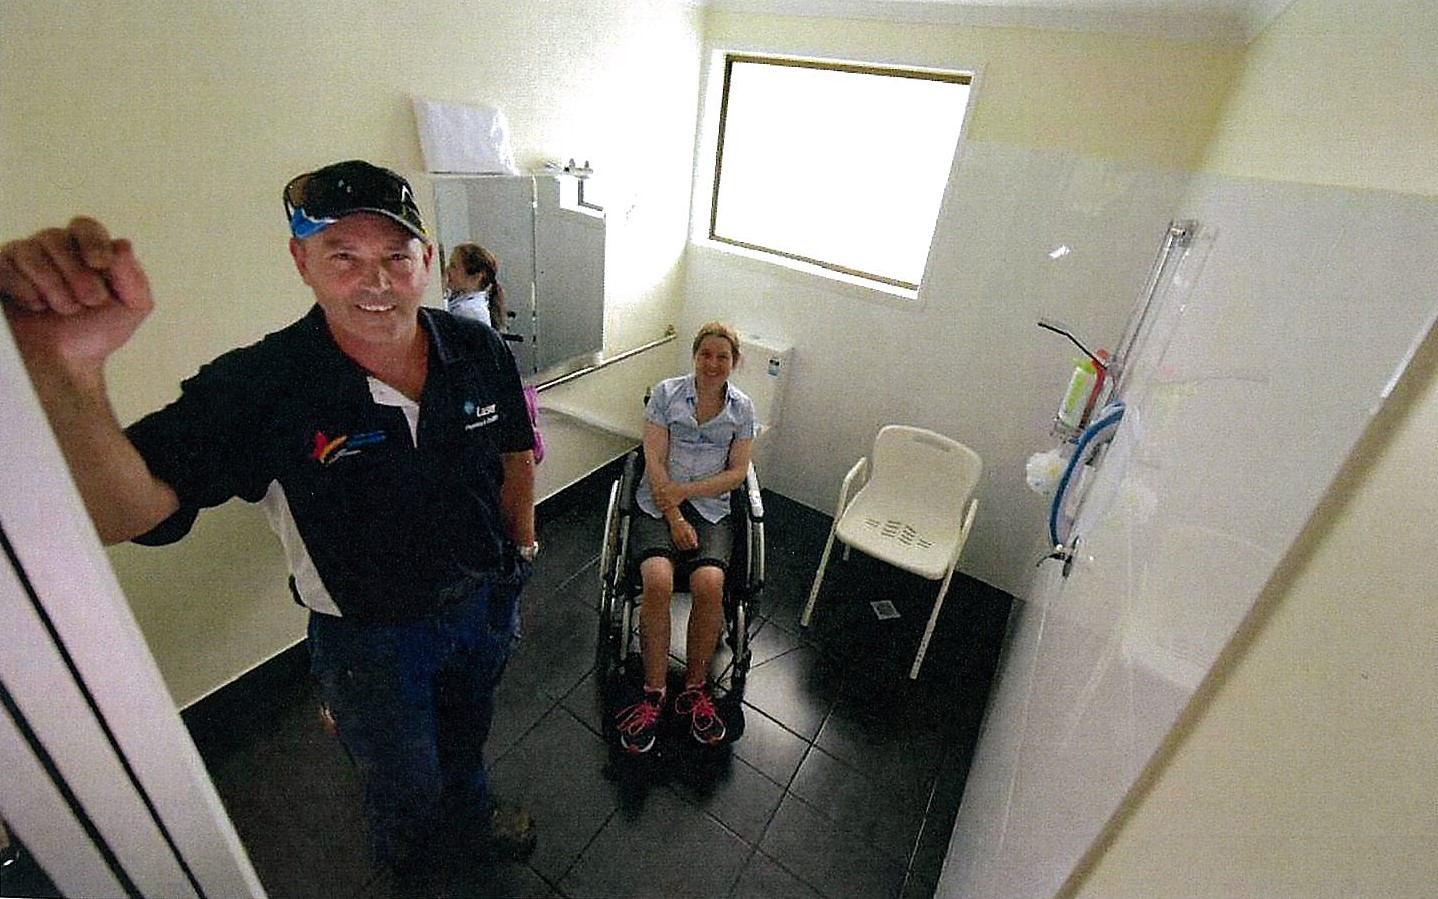 Plumber to rescue for a woman in need